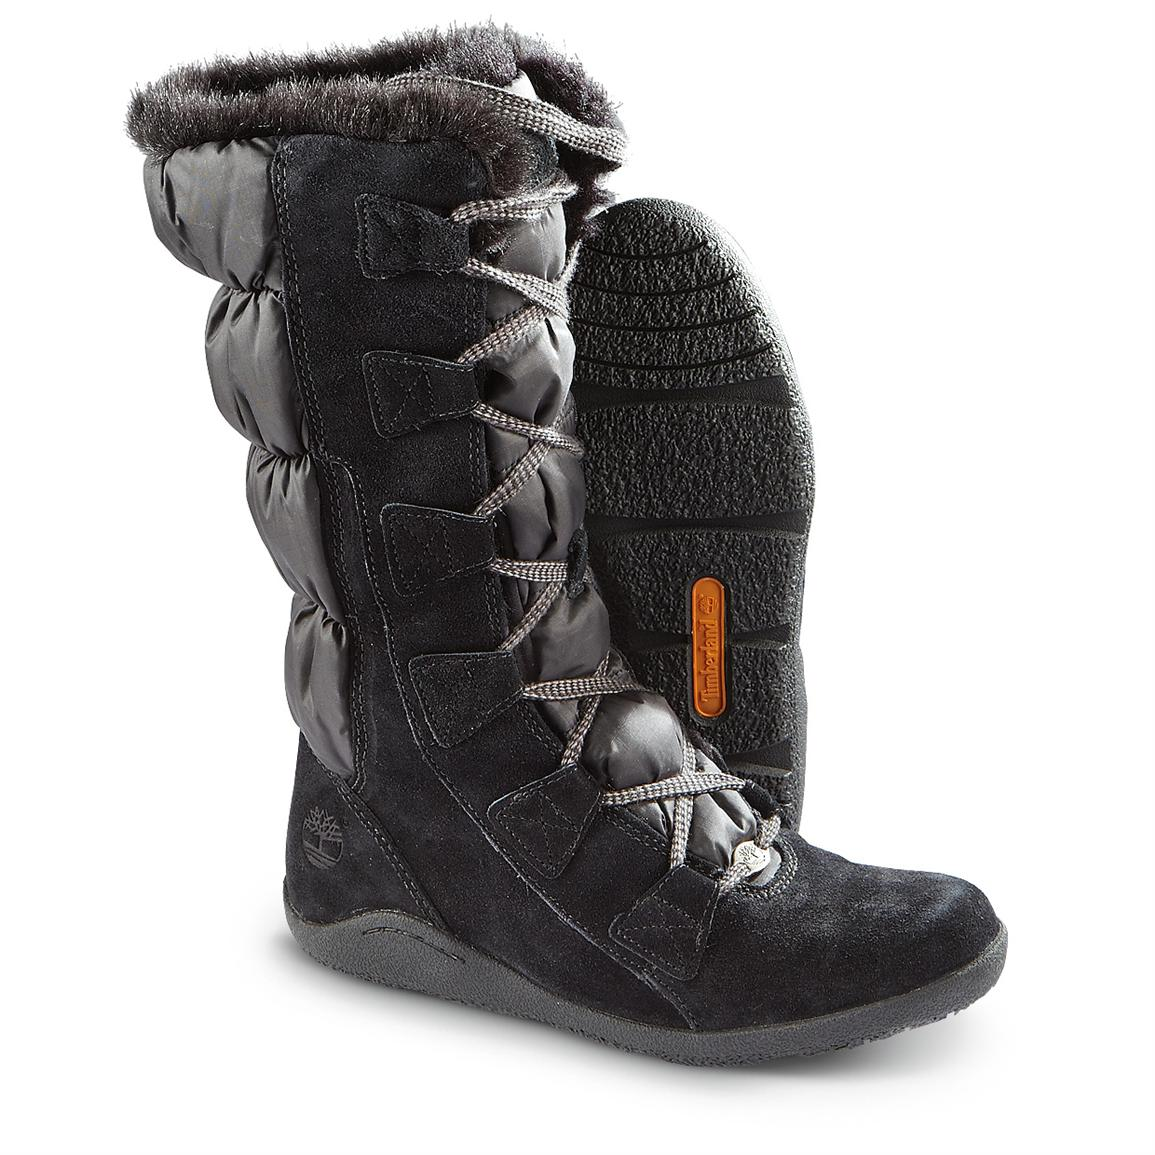 Womens Black Winter Boots 01FQq9GN